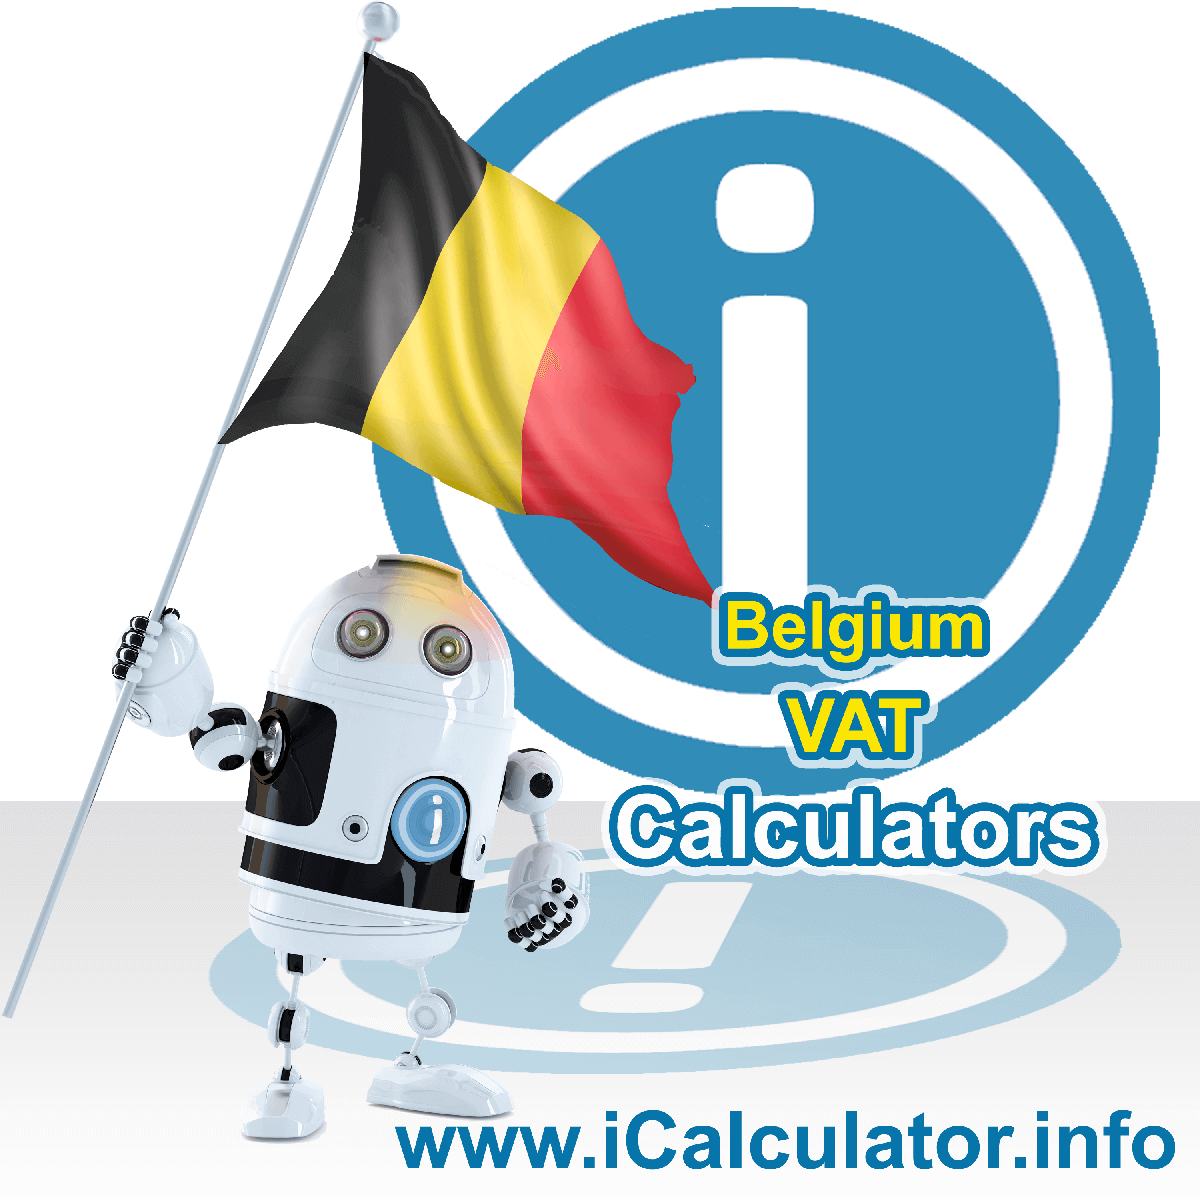 Belgium VAT Calculator. This image shows the Belgium flag and information relating to the VAT formula used for calculating Value Added Tax in Belgium using the Belgium VAT Calculator in 2021